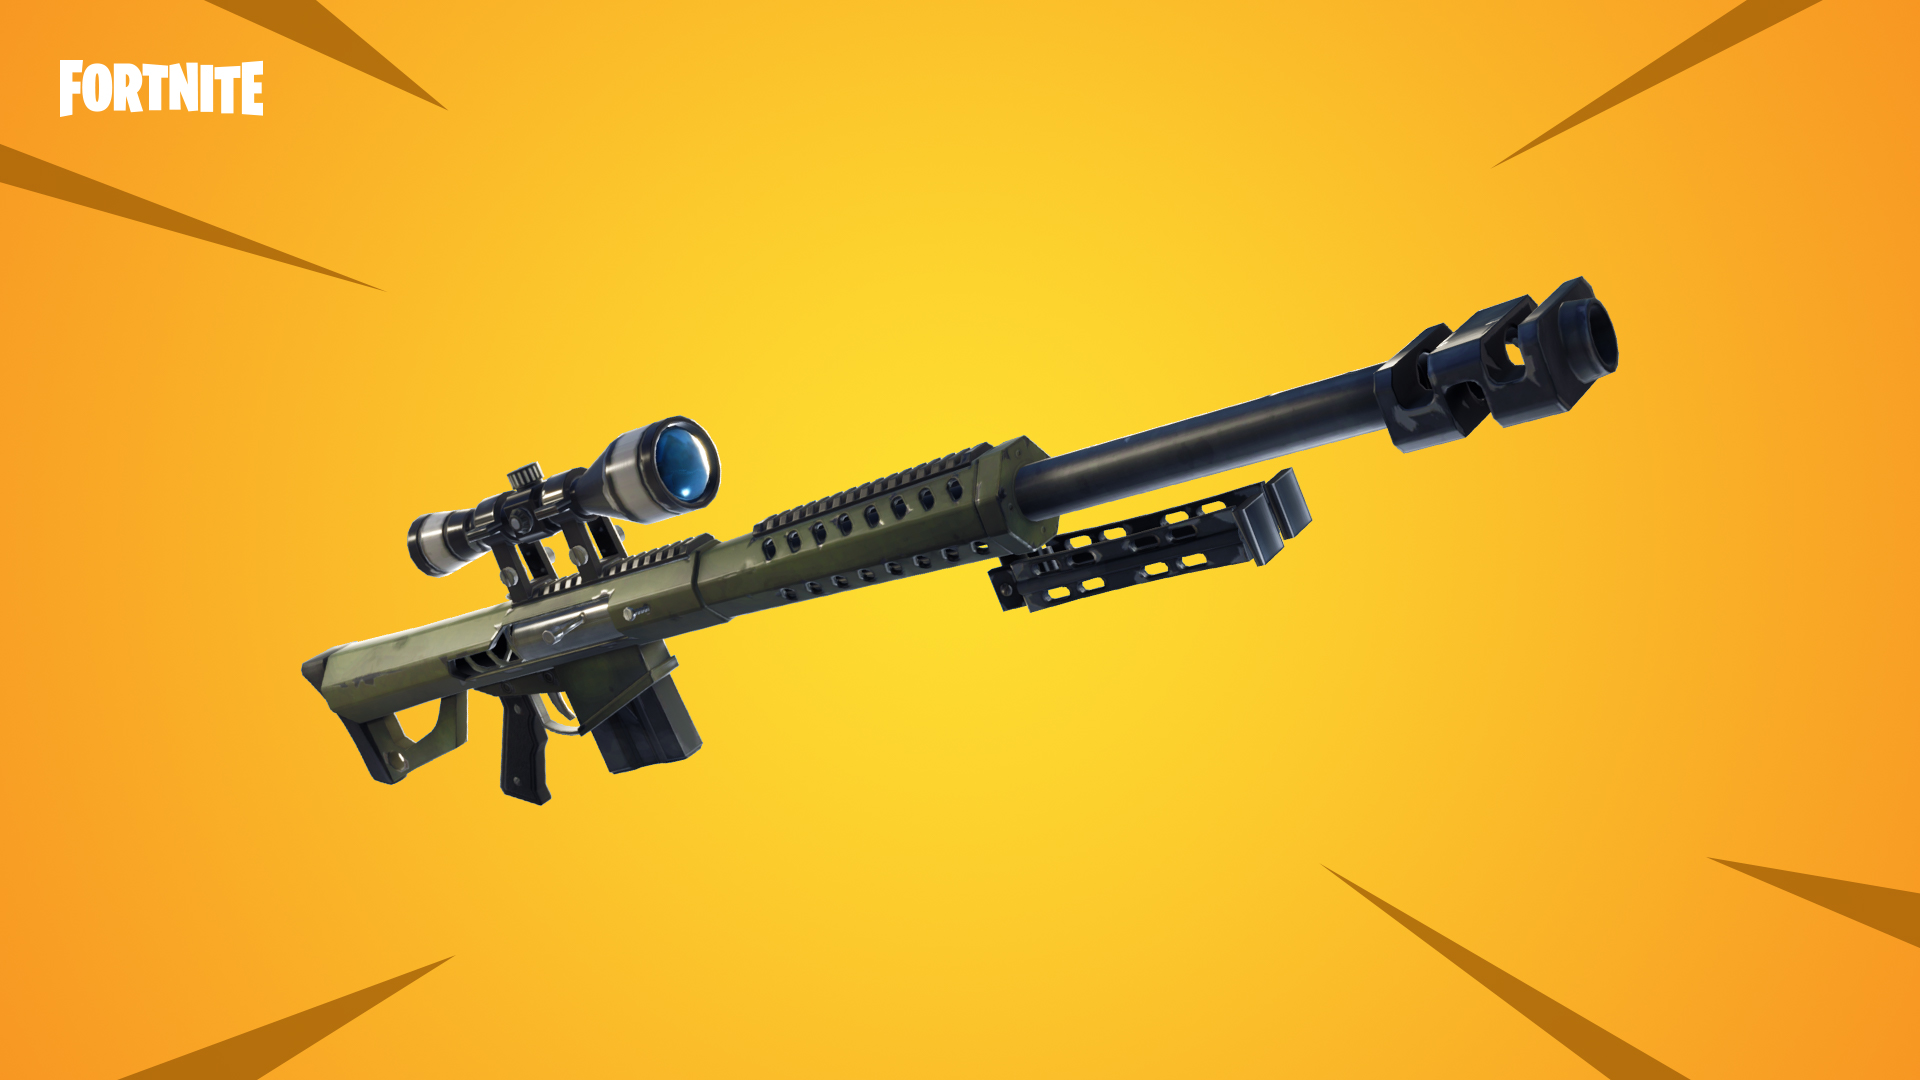 Fortnite%2Fpatch-notes%2Fv5-21%2Foverview-text-v5-21%2FBR05_Yellow_Social_Heavy-Sniper-1920x1080-64c00b03bf0c4f747077946212885c9564a69a72.jpg